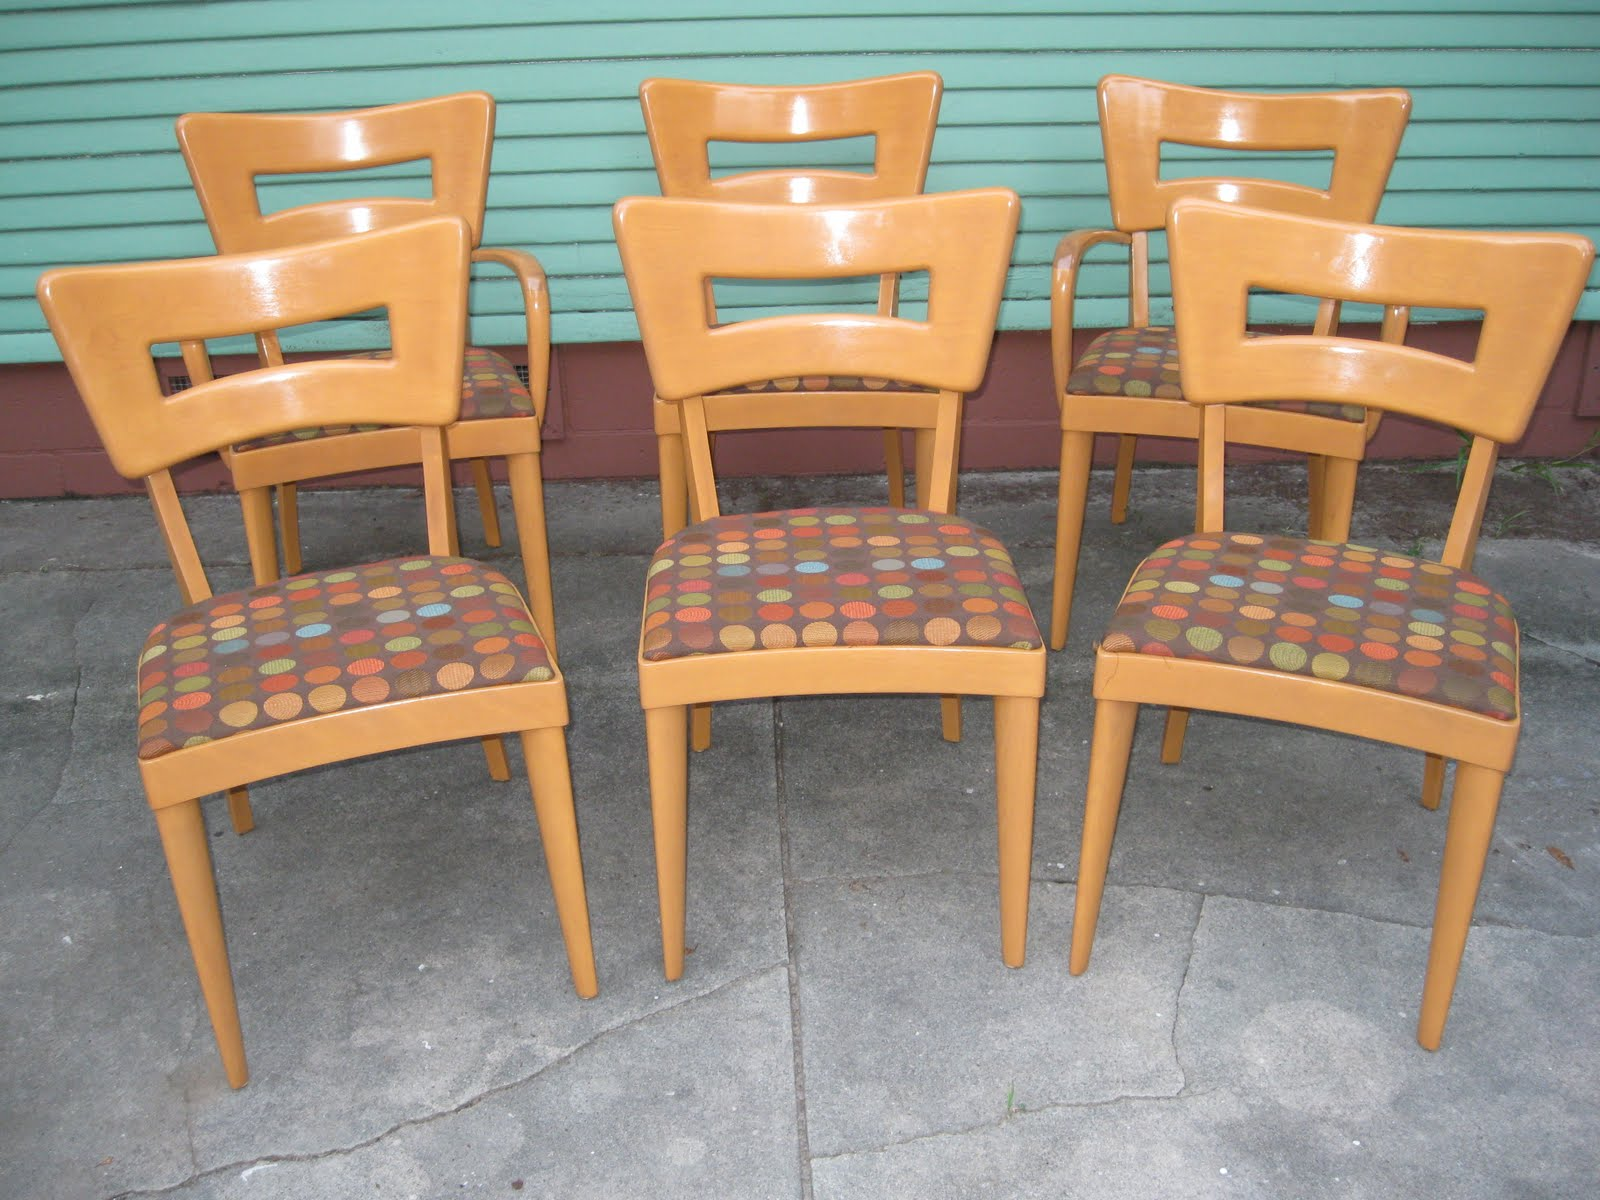 heywood wakefield dogbone chairs memory foam desk chair a modern line refinishing and other mid century one of our clients table here in central tampa classic wishbone they purchased abused but at least not desicrated like